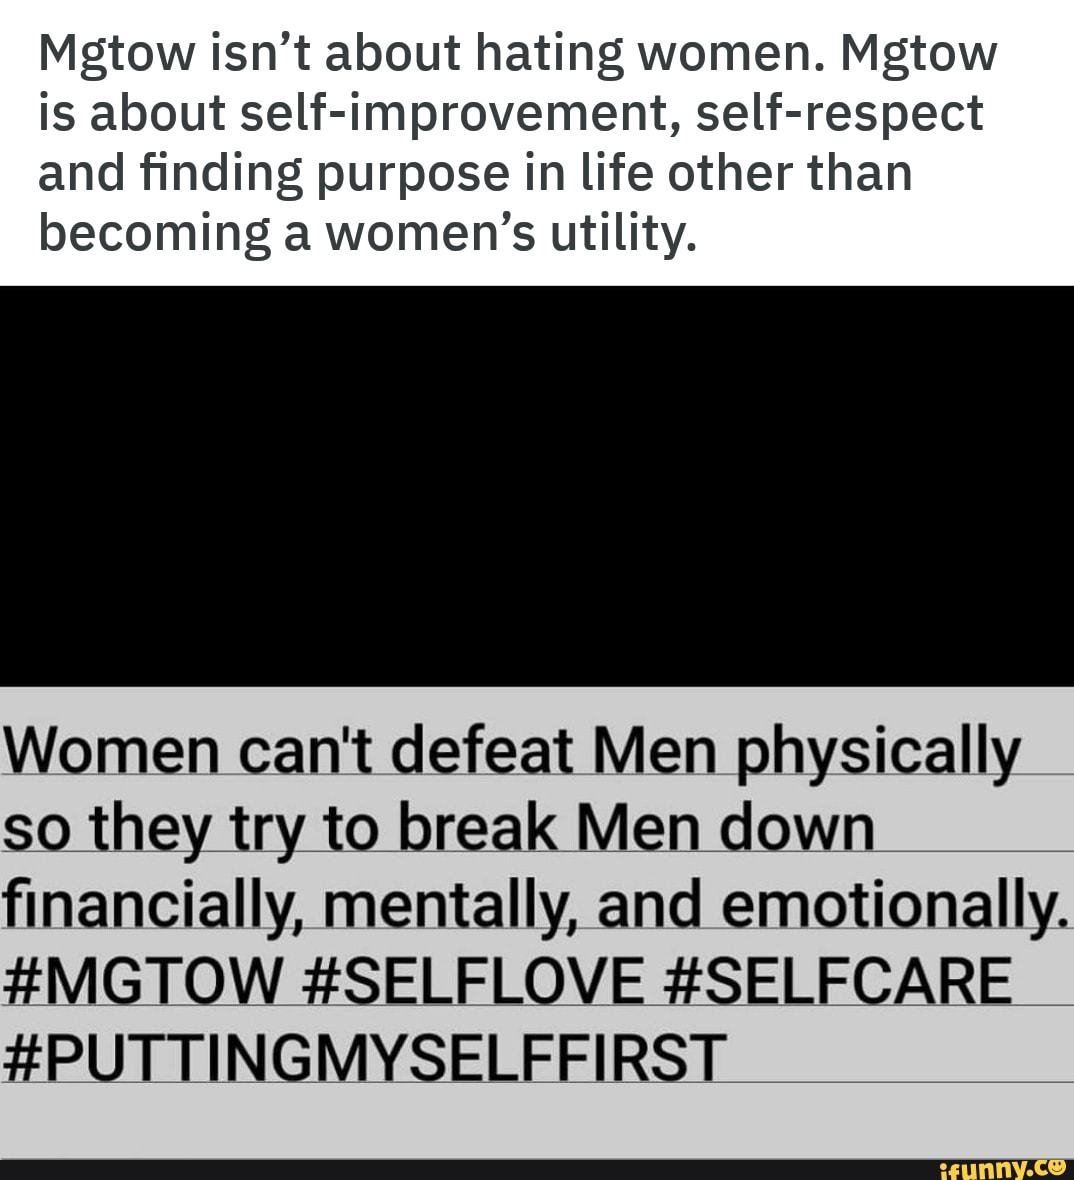 Mgtow isn't about hating women  Mgtow is about self